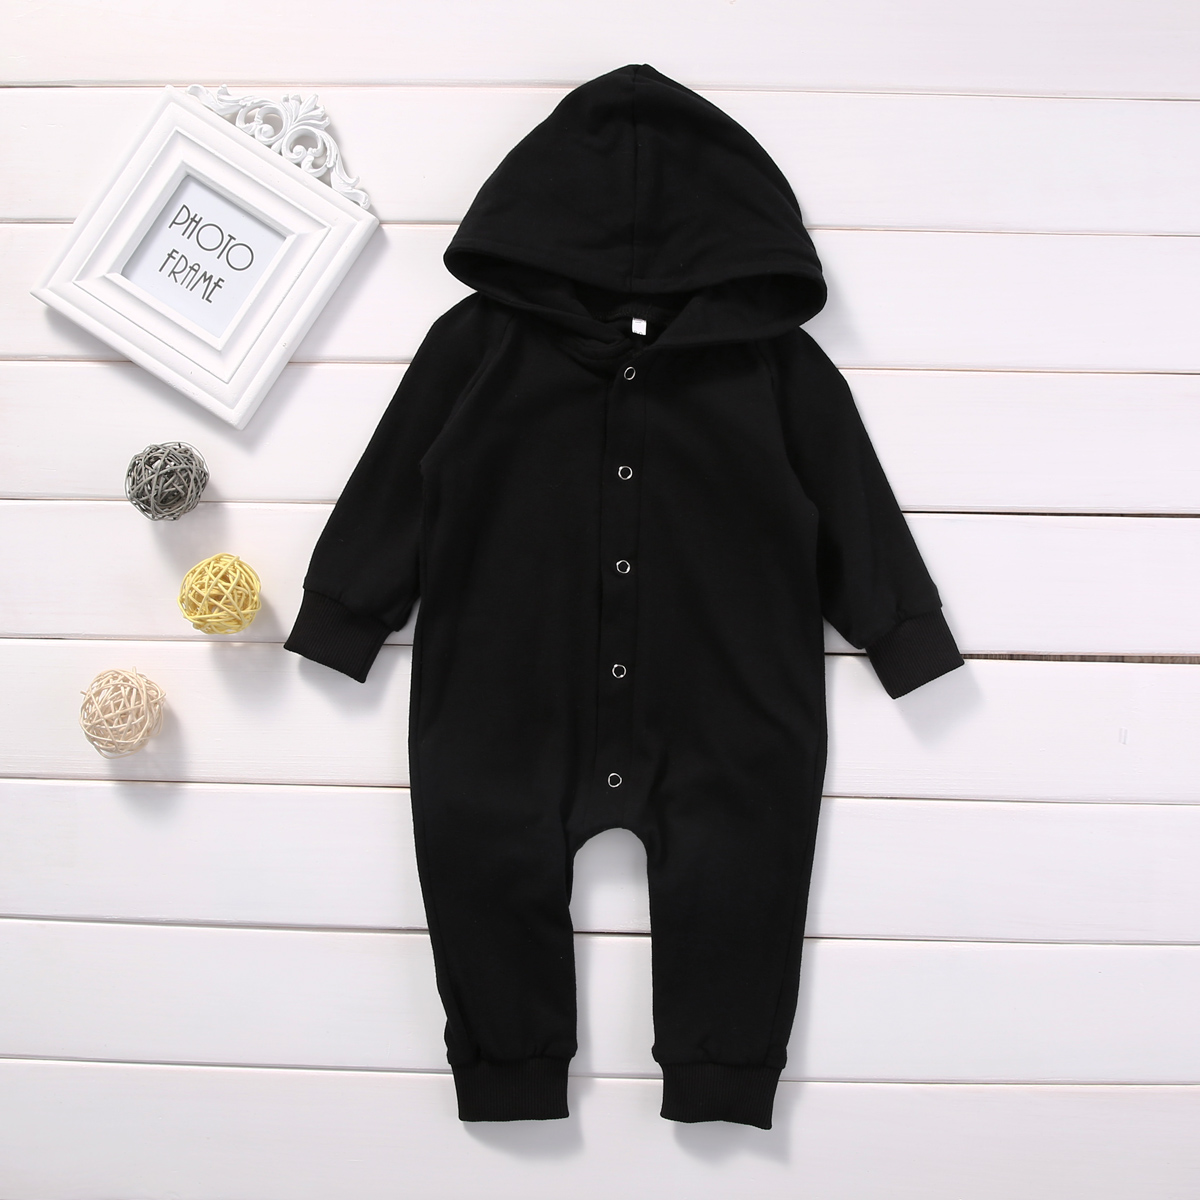 2017 Hot Newborn Infant Warm Baby Boy Girl Clothes Cotton Long Sleeve Hooded Romper Jumpsuit One Pieces Outfit Tracksuit 0-24M newborn infant warm baby boy girl clothes cotton long sleeve hooded romper jumpsuit one pieces outfit tracksuit 0 24m